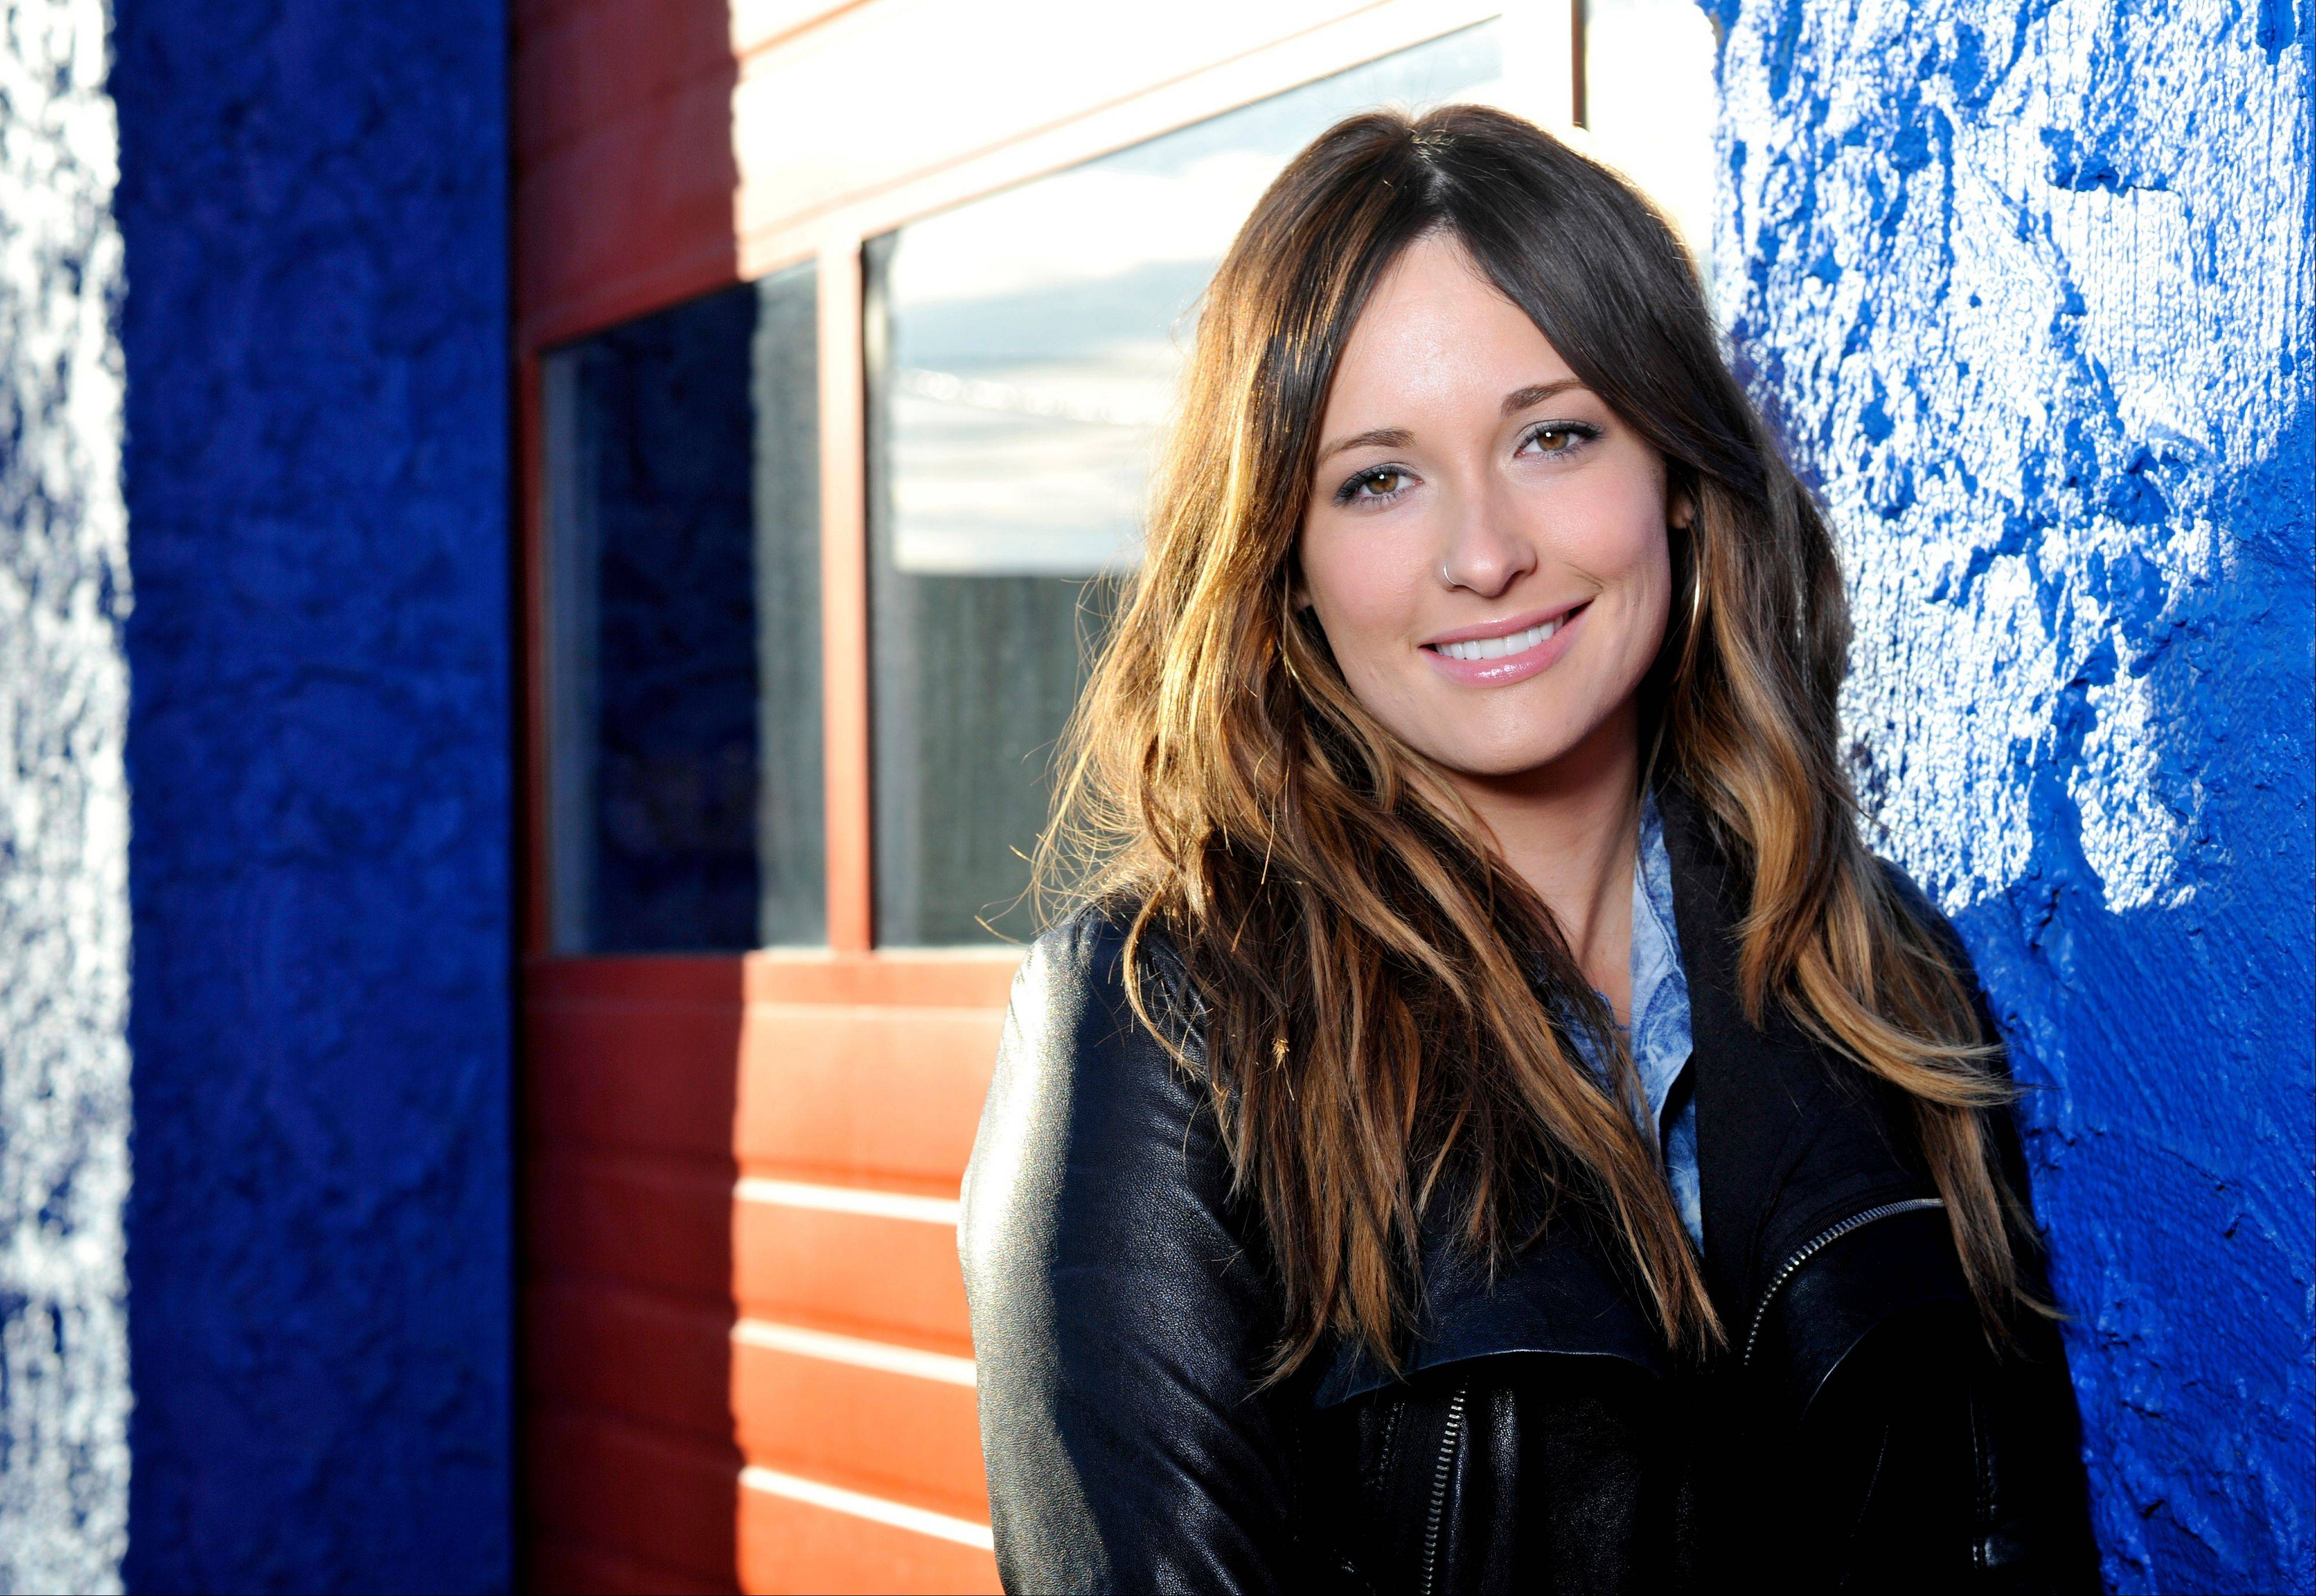 Newcomer Kacey Musgraves takes Nashville by storm